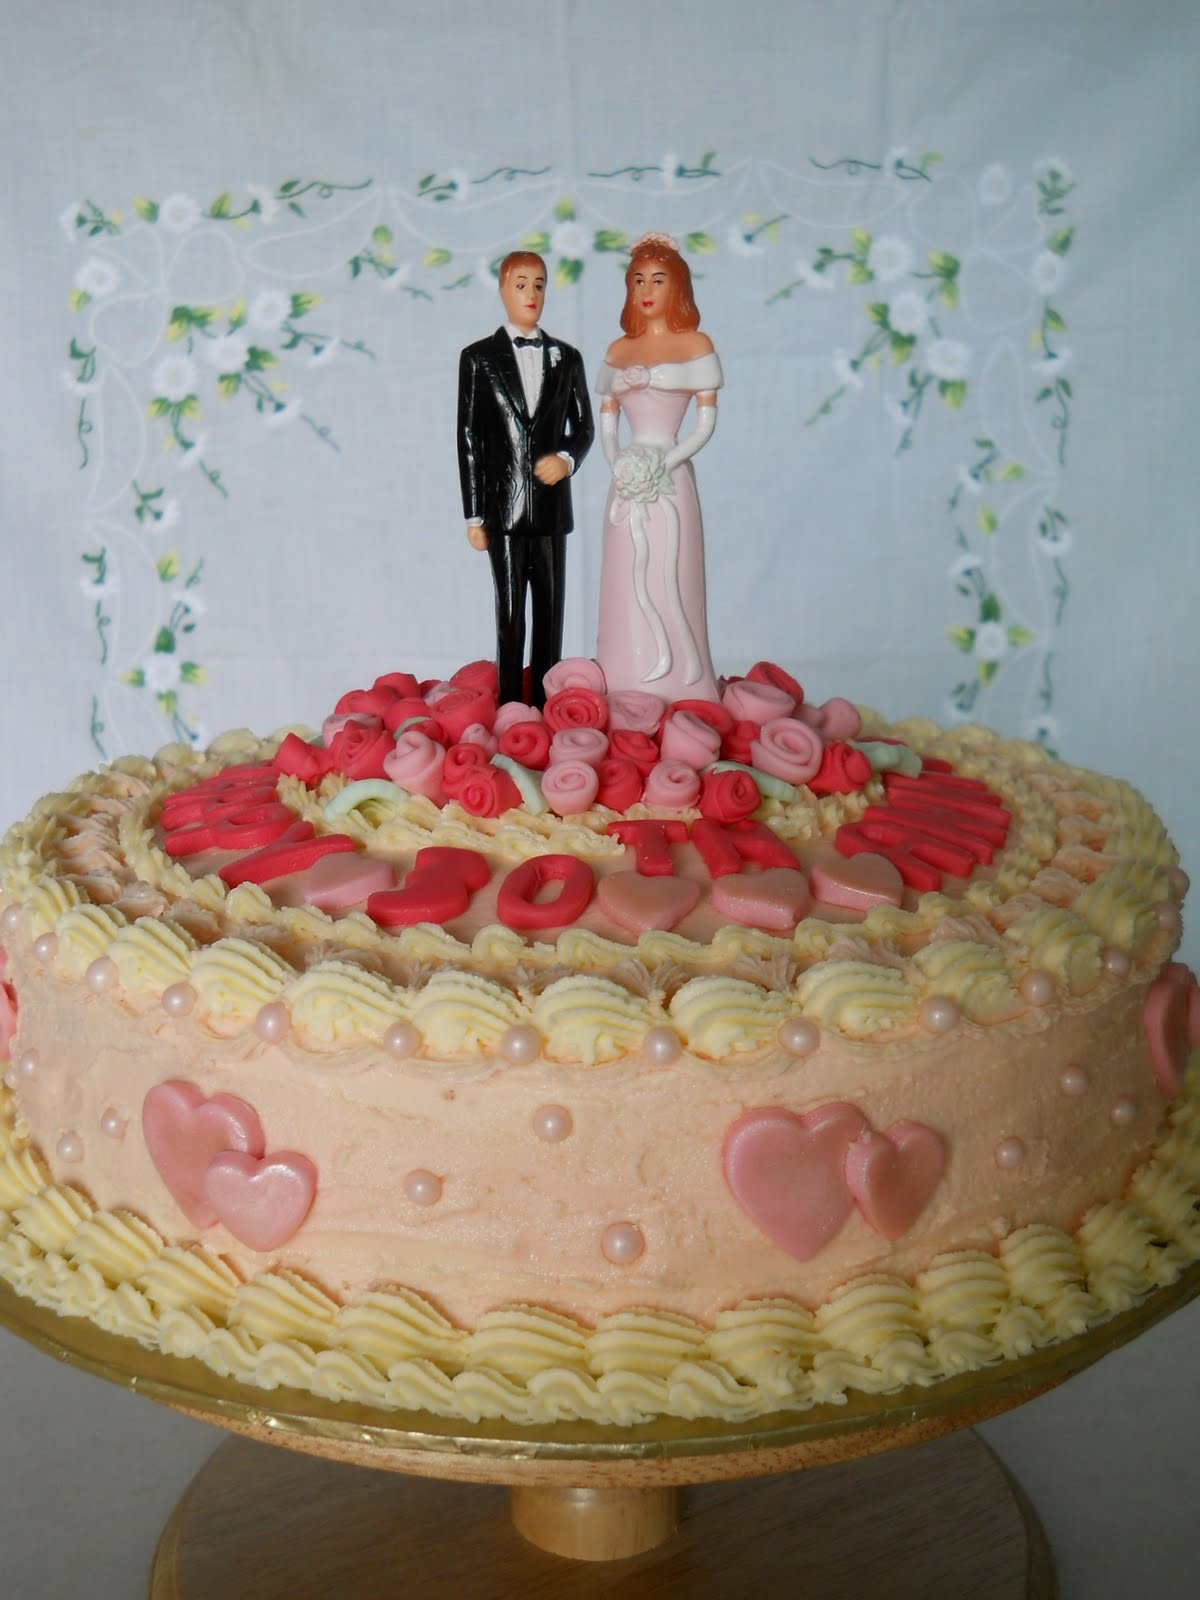 THE BEST CAKES IN TOWN WEDDING ANNIVERSARY CAKE